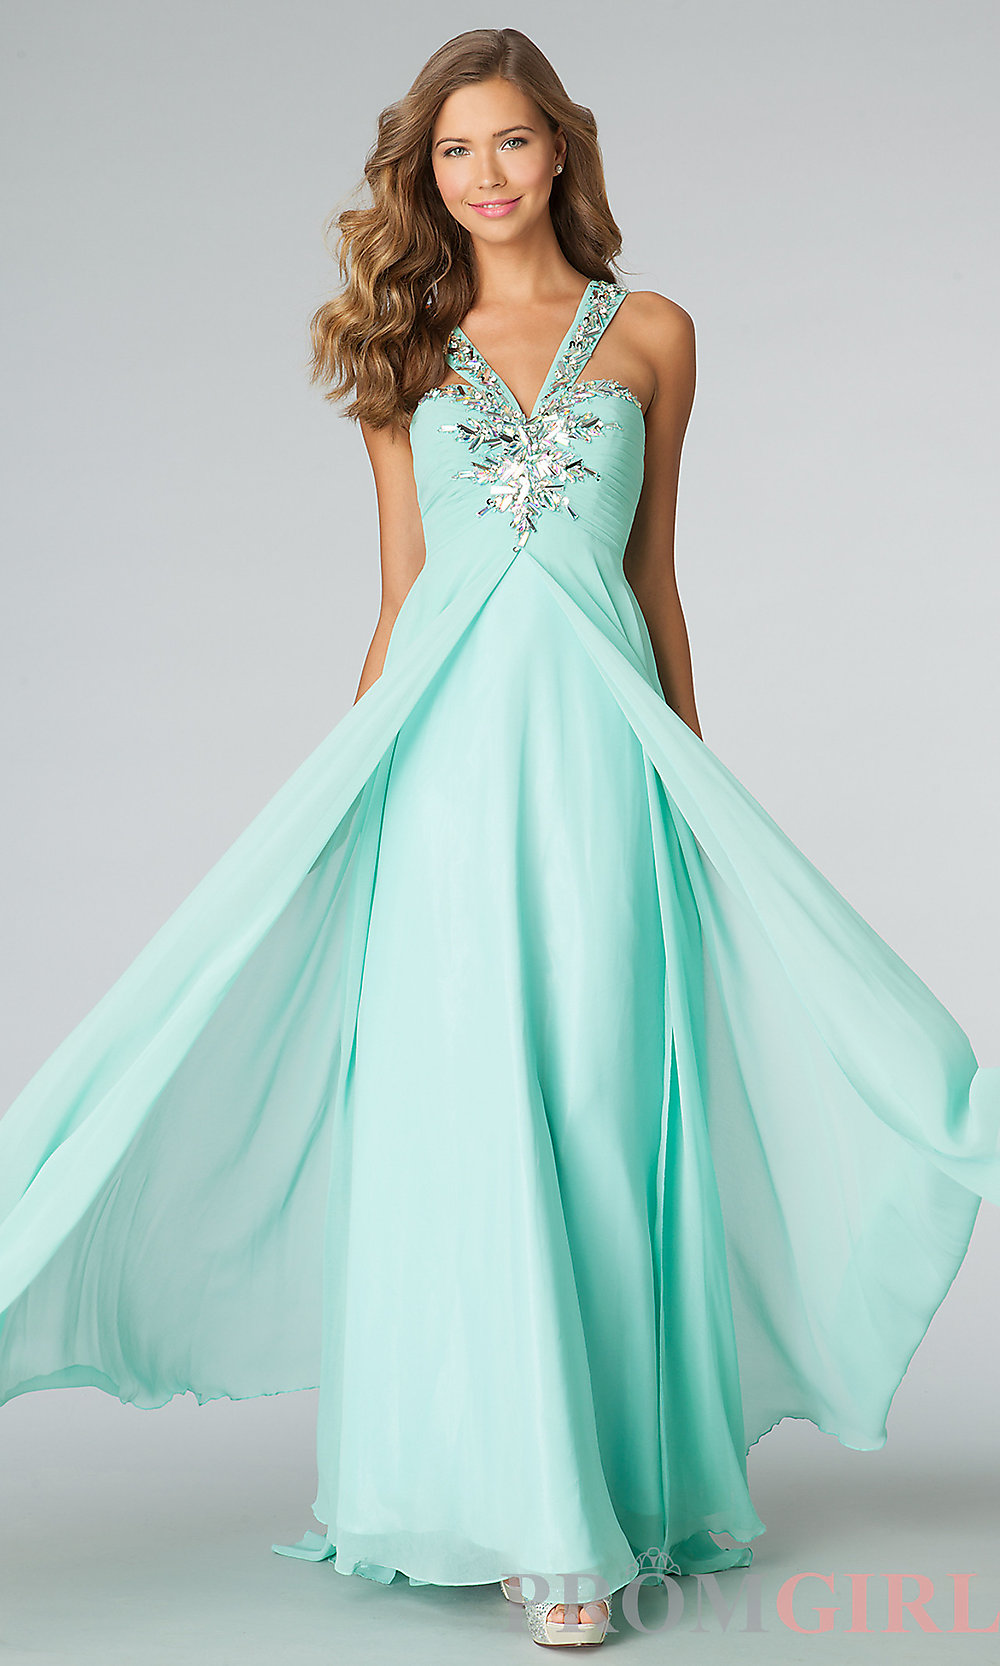 Prom Dresses and Fancy Gowns For Weddings and Parties